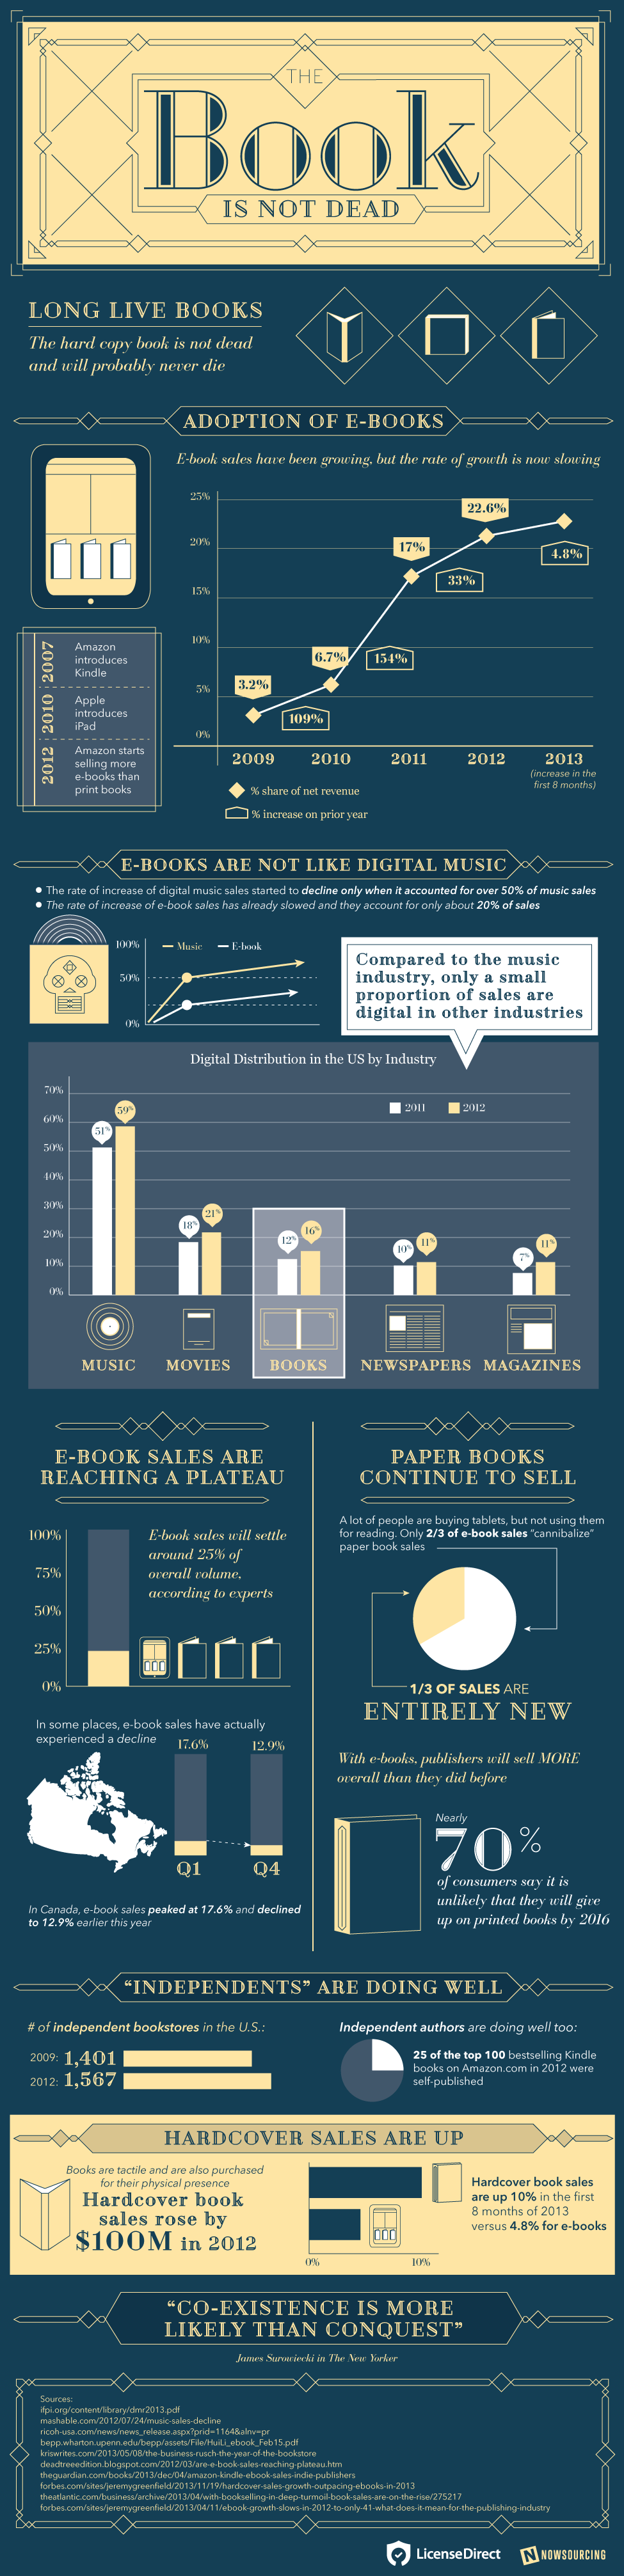 The Book Is Not Dead - Infographic by License Direct